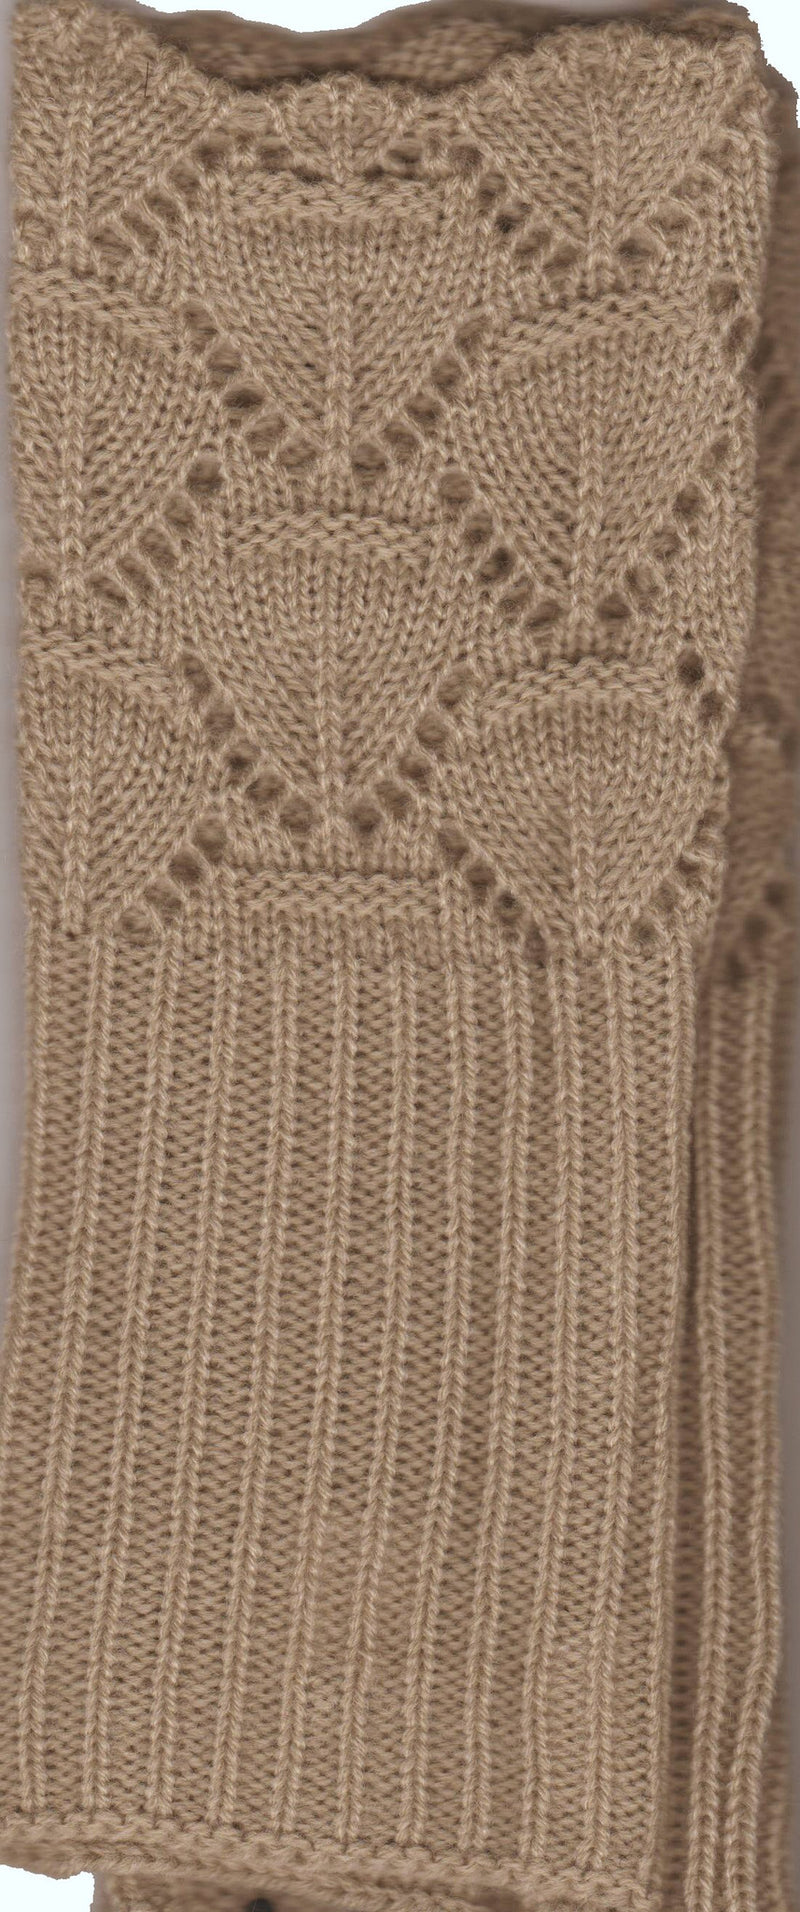 Camel Lace and Scallop Edge Design Lauer Glove for Petite Hands